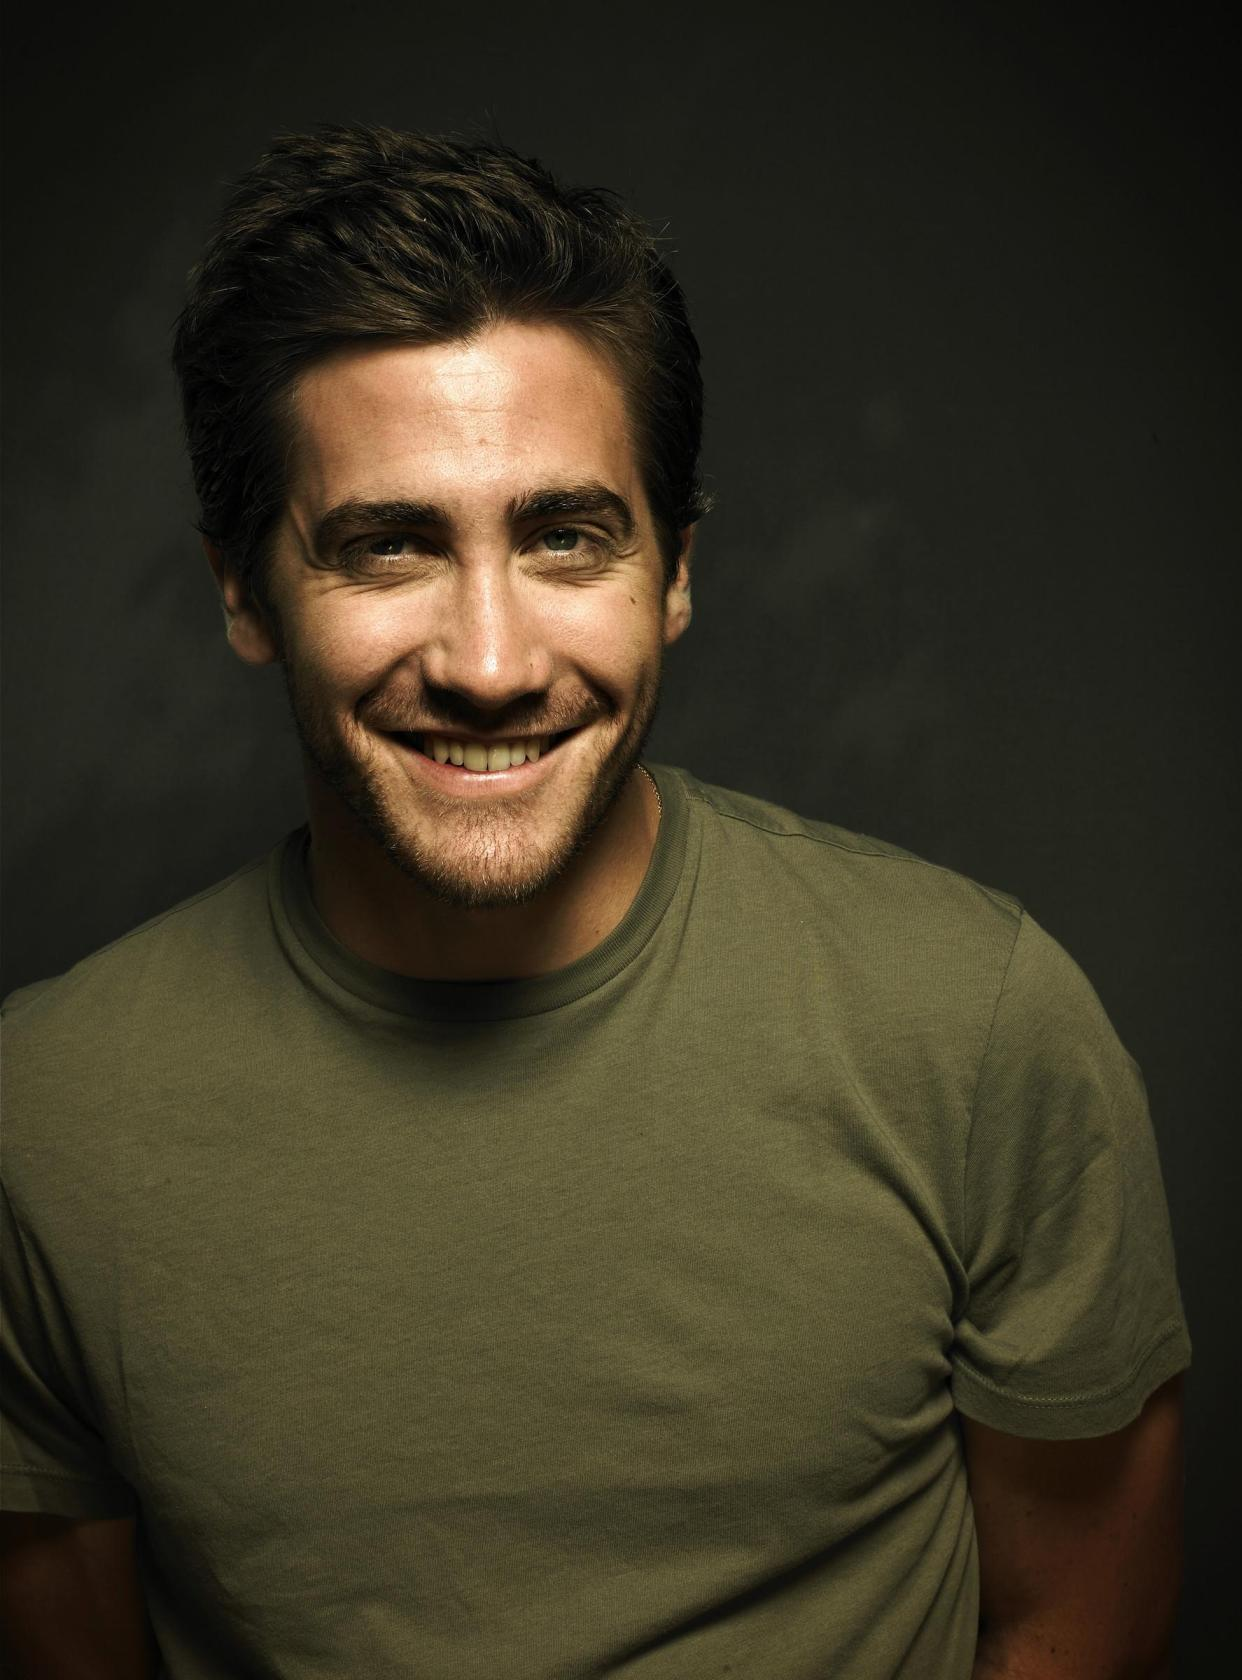 Jake Gyllenhaal For mobile